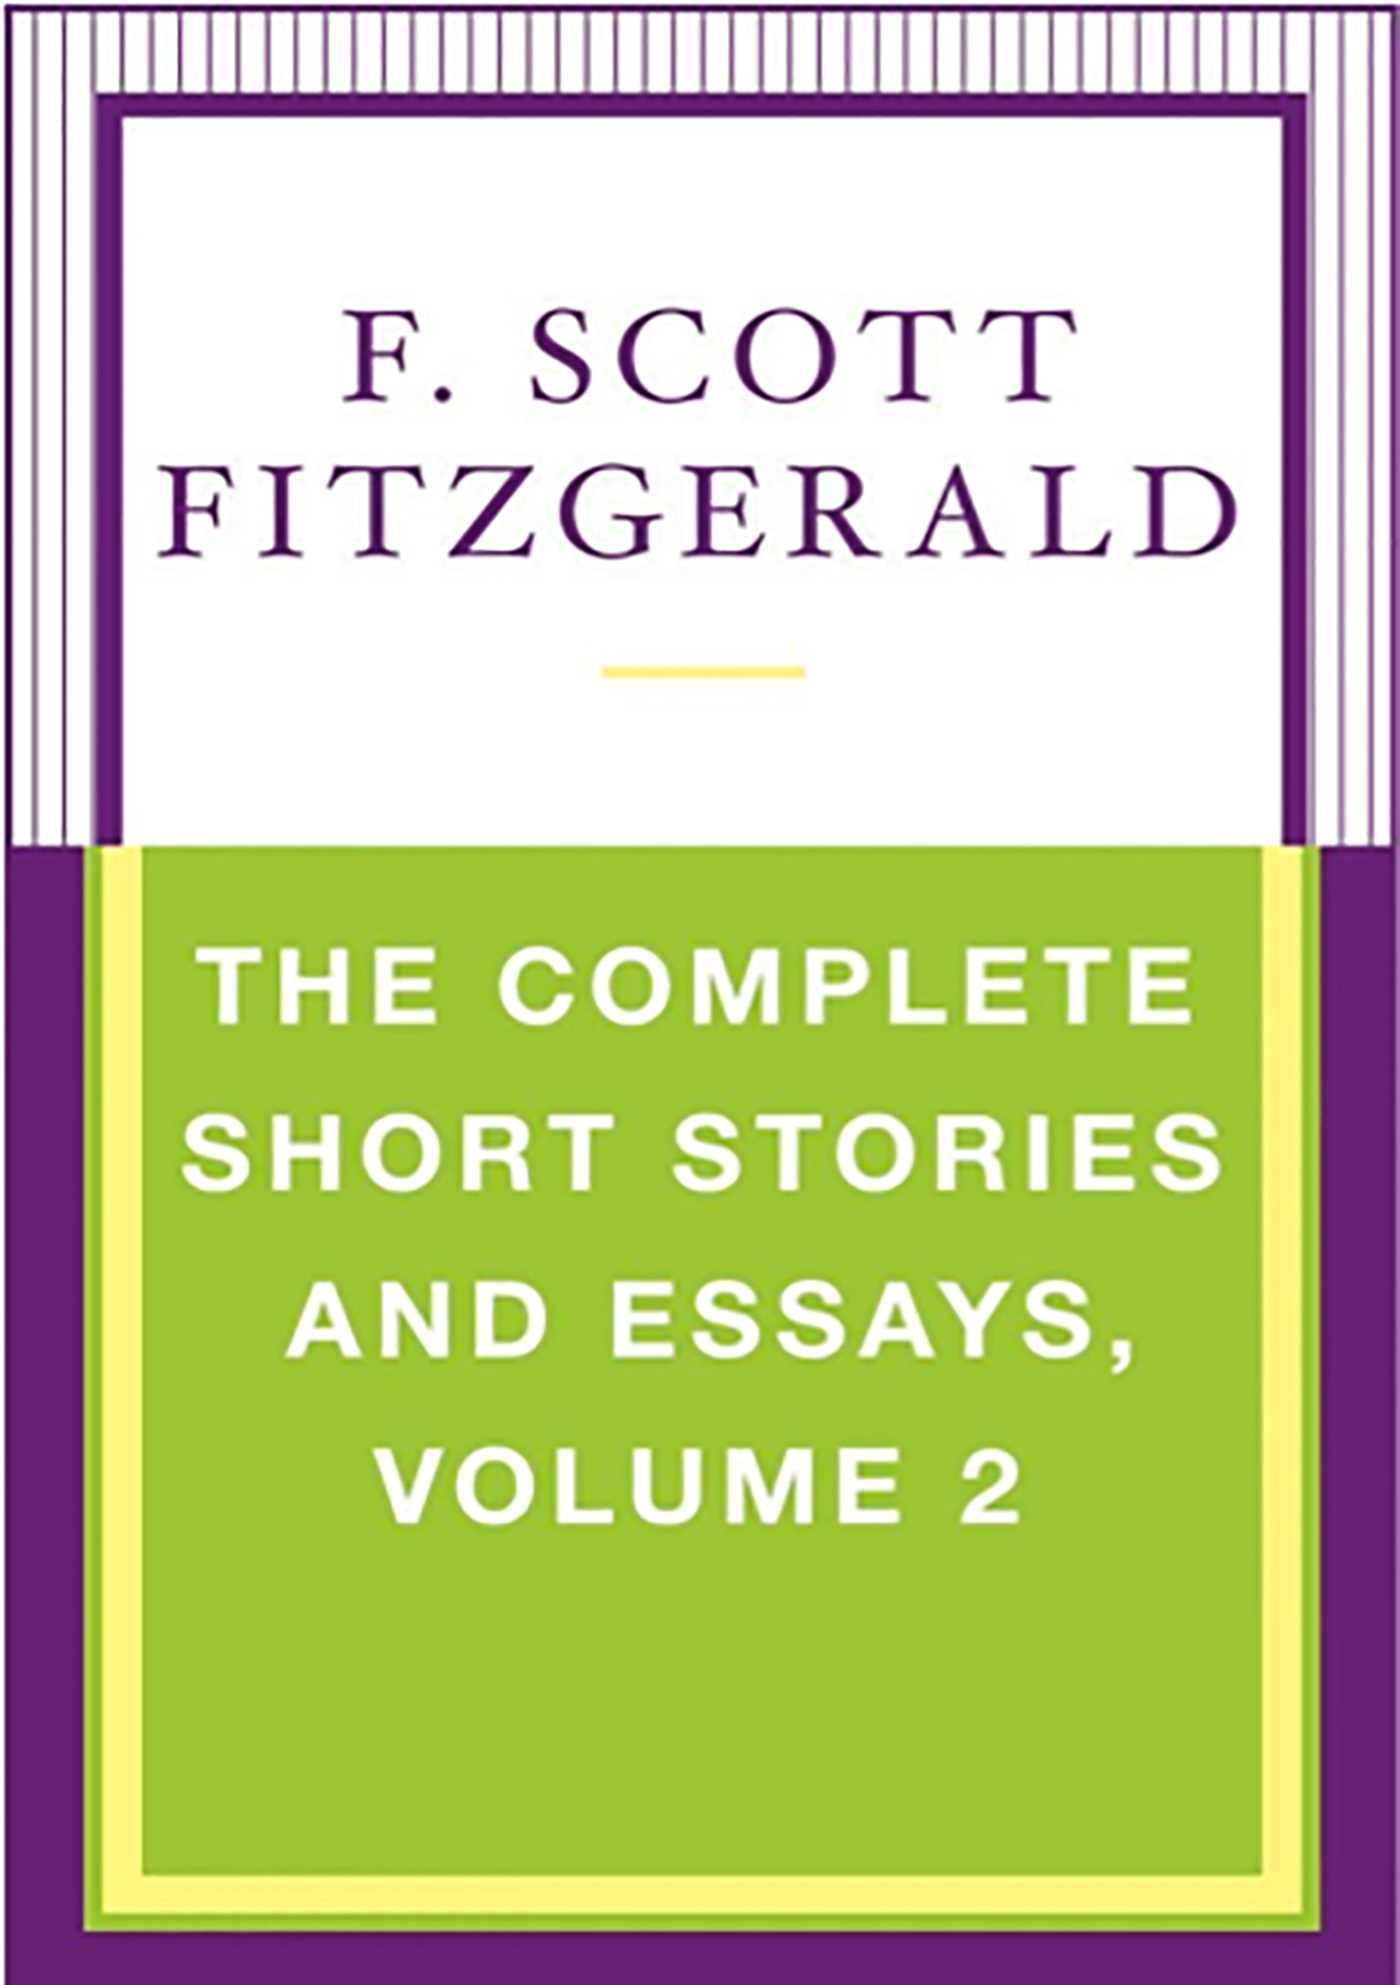 f scott fitzgerald essay f scott fitzgerald facts things you didn  f scott fitzgerald official publisher page simon schuster uk book cover image jpg the complete short